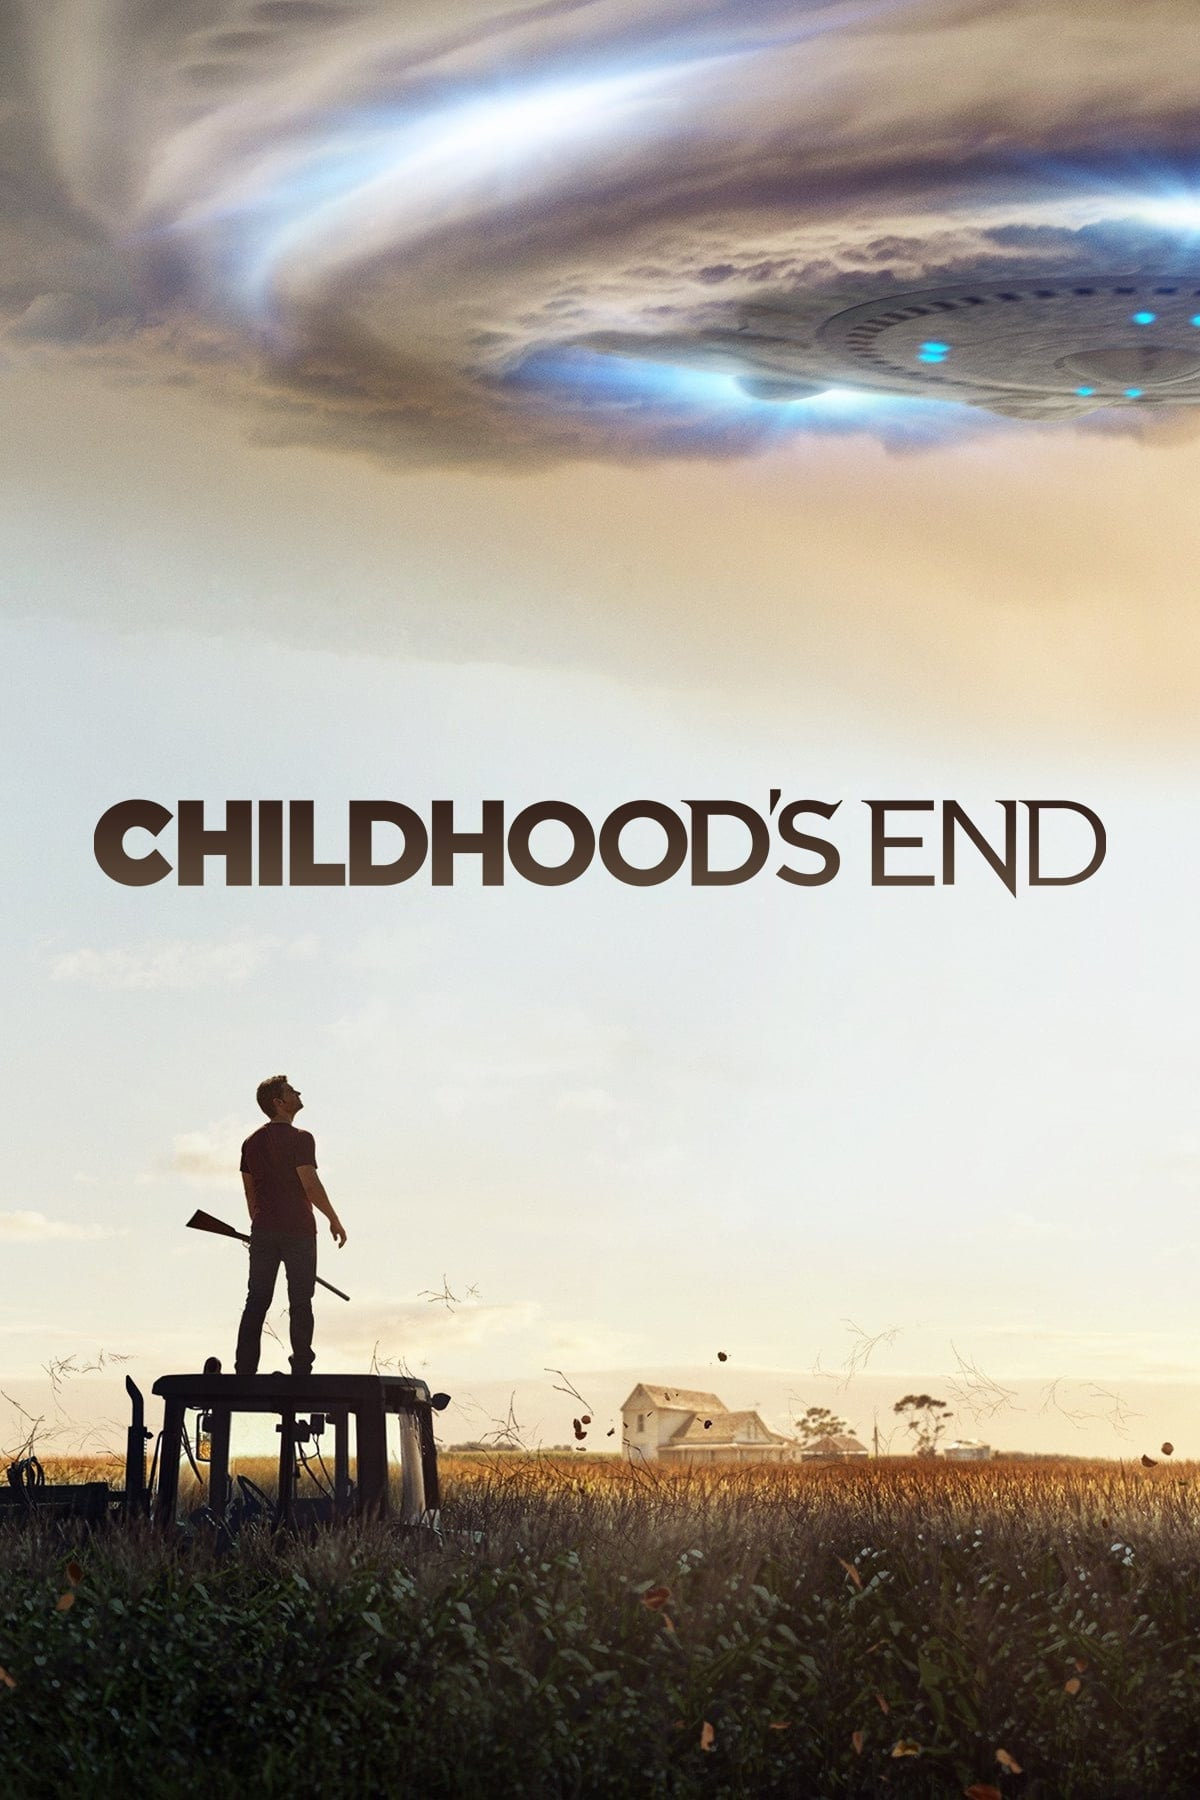 Childhood's End TV Shows About Alien Invasion